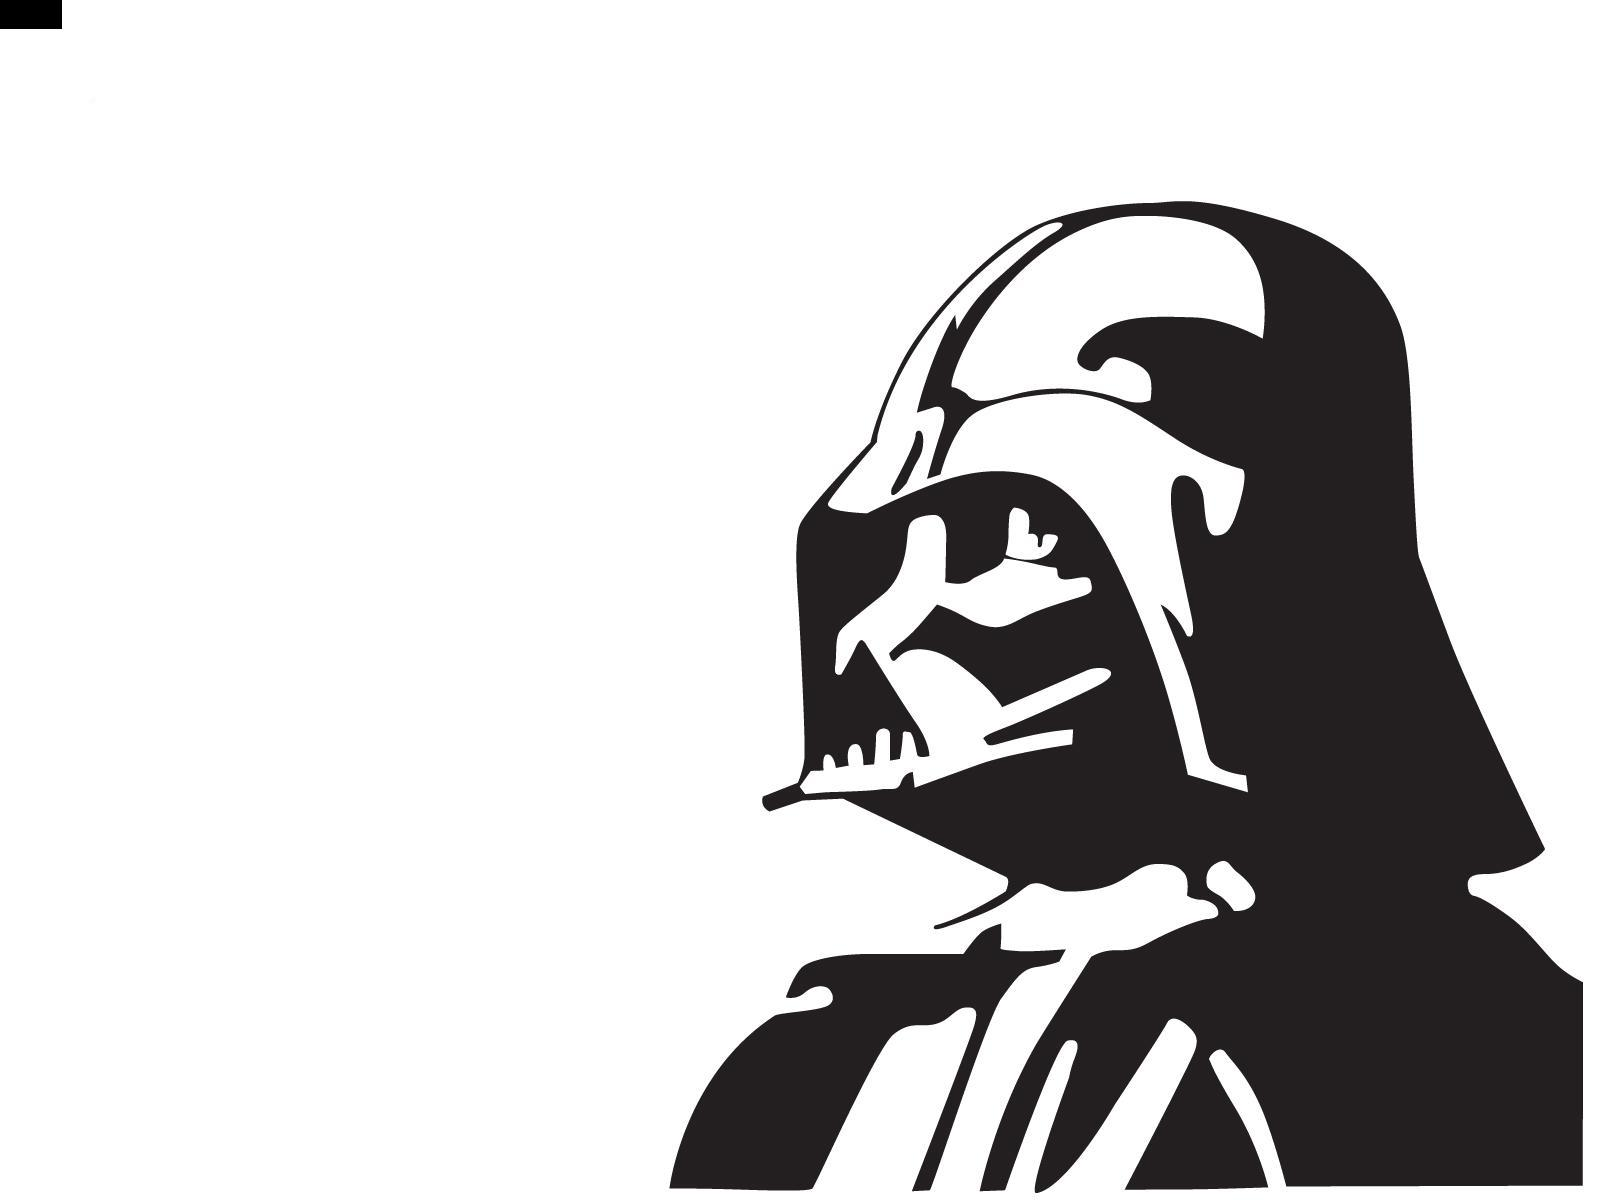 Star Wars Wallpaper And Background Image 1600x1200 Id 81736 Wallpaper Abyss